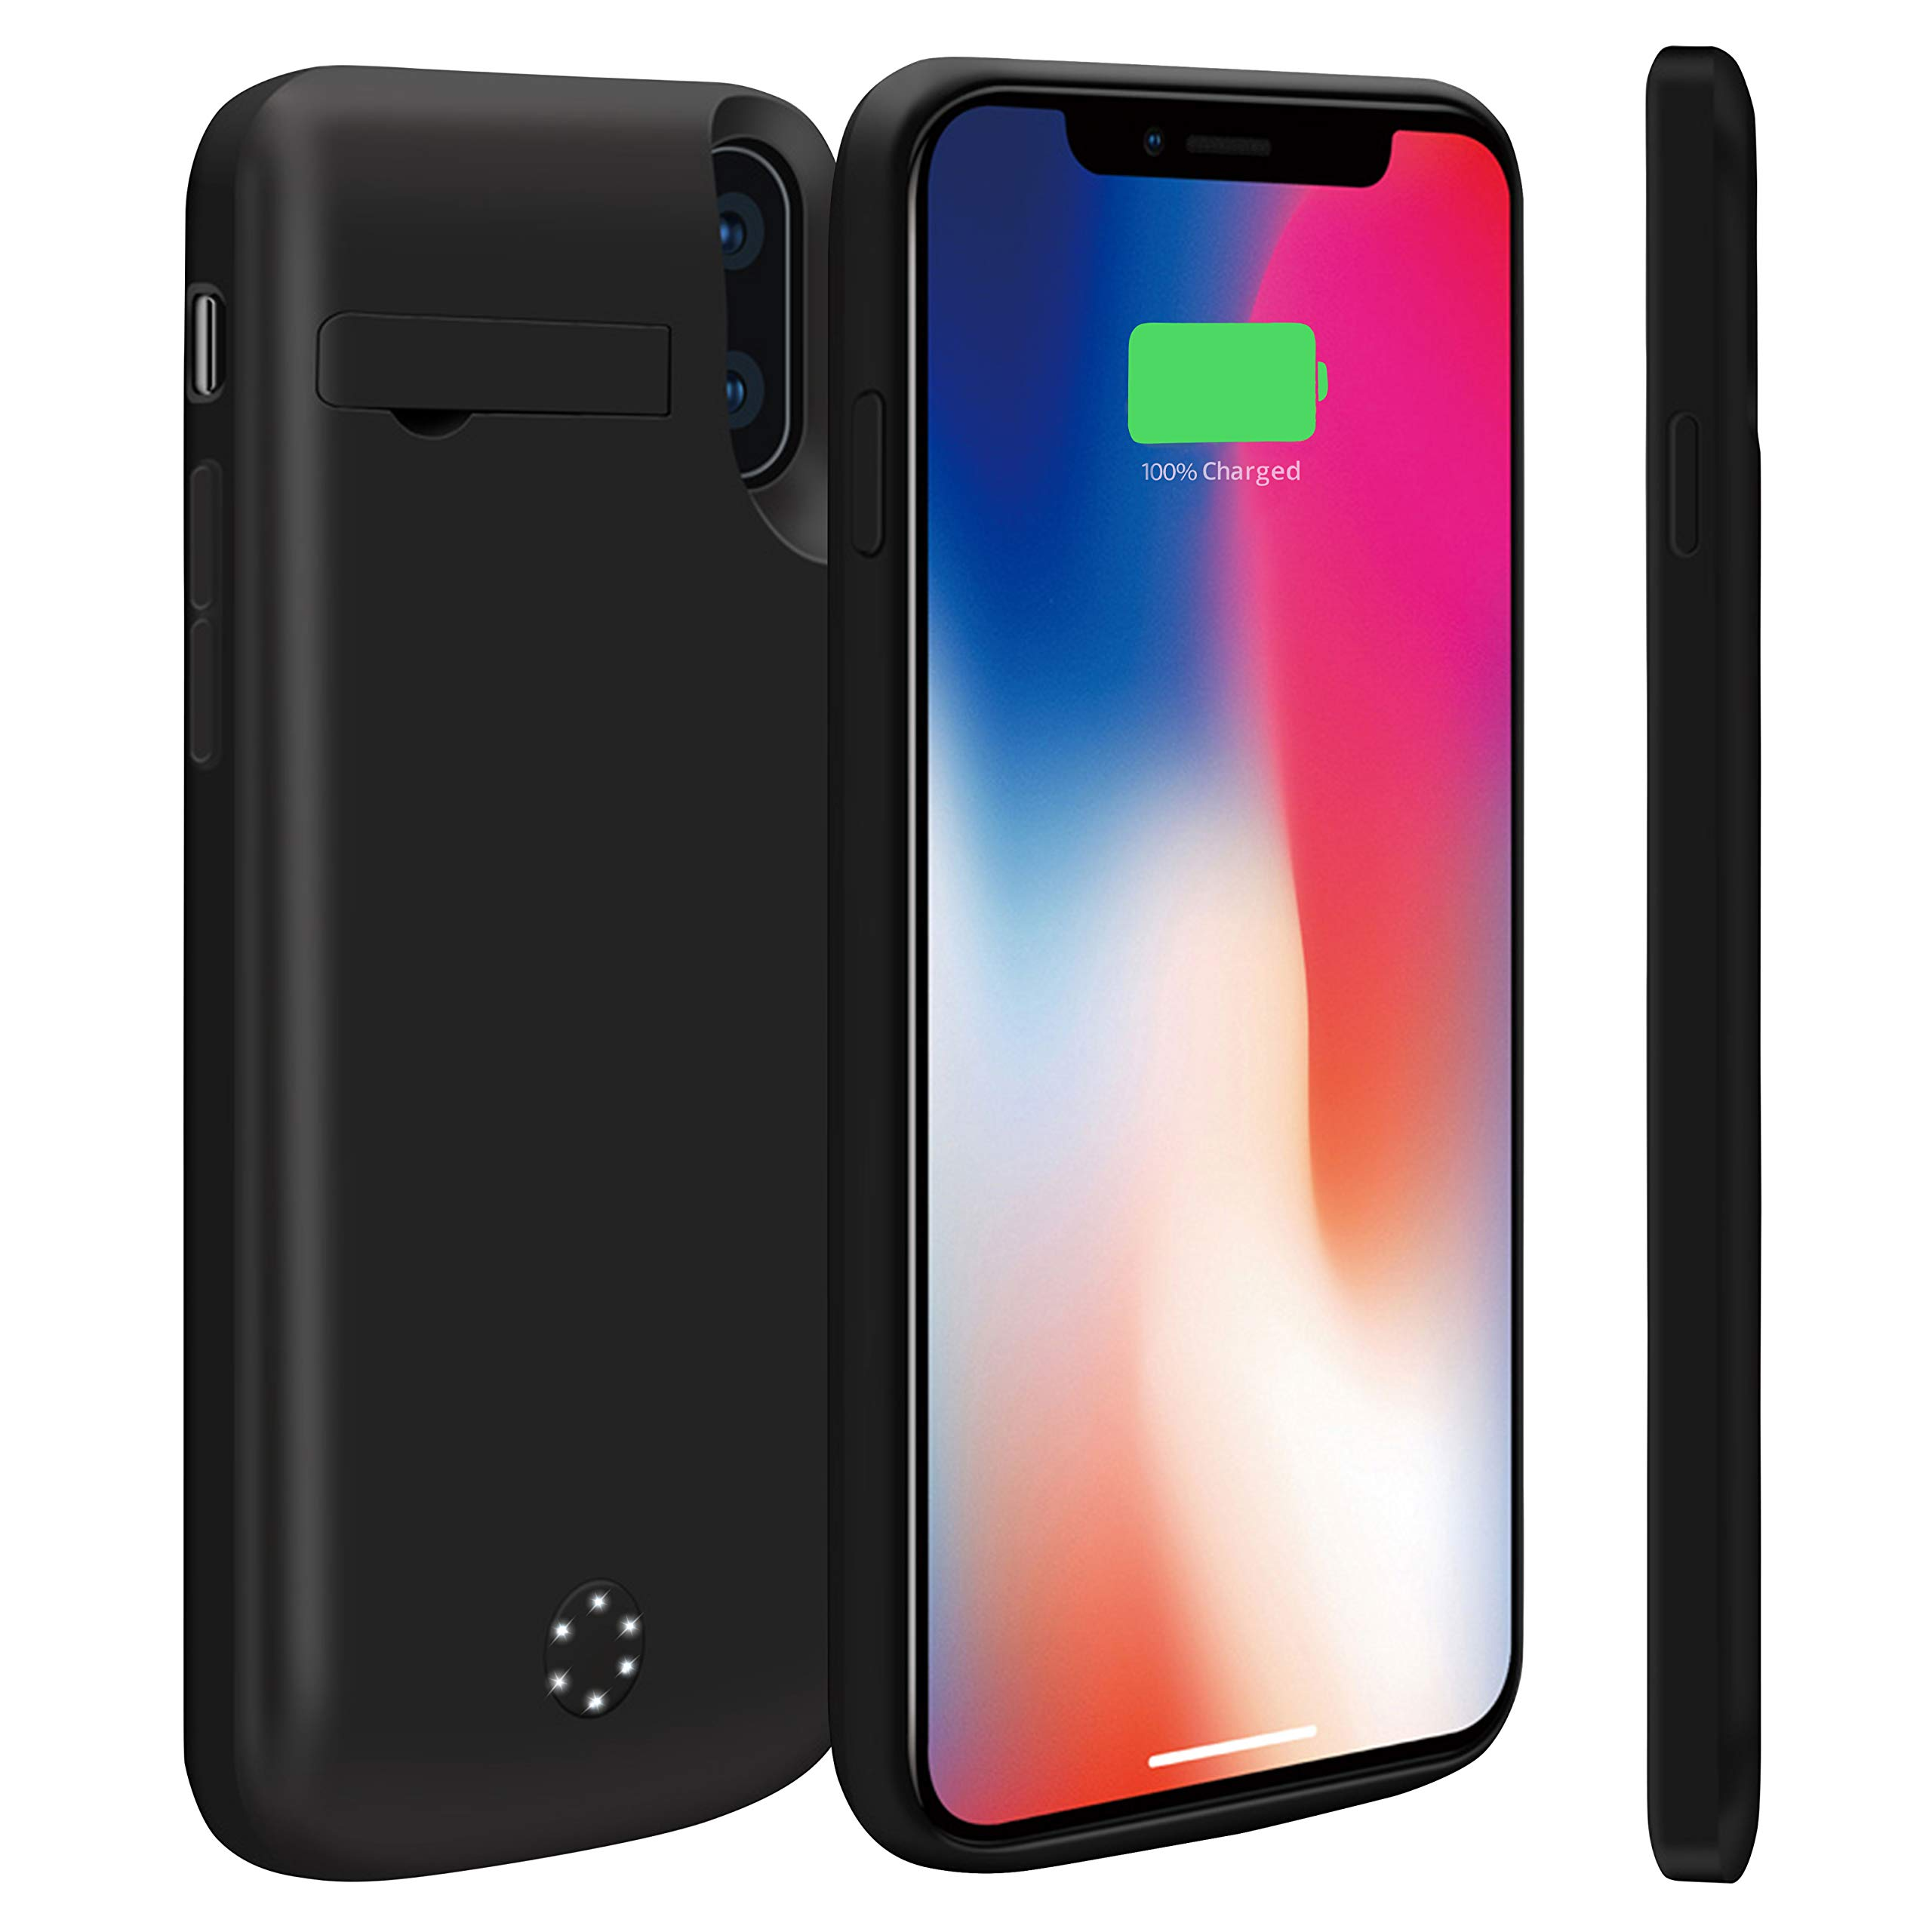 Never Run Out NRO iPhone X Charger Case Upgraded 6000mAh Portable Rechargeable Extended Battery Pack Protective Charging Case with Tempered Glass Screen Protector + Kickstand